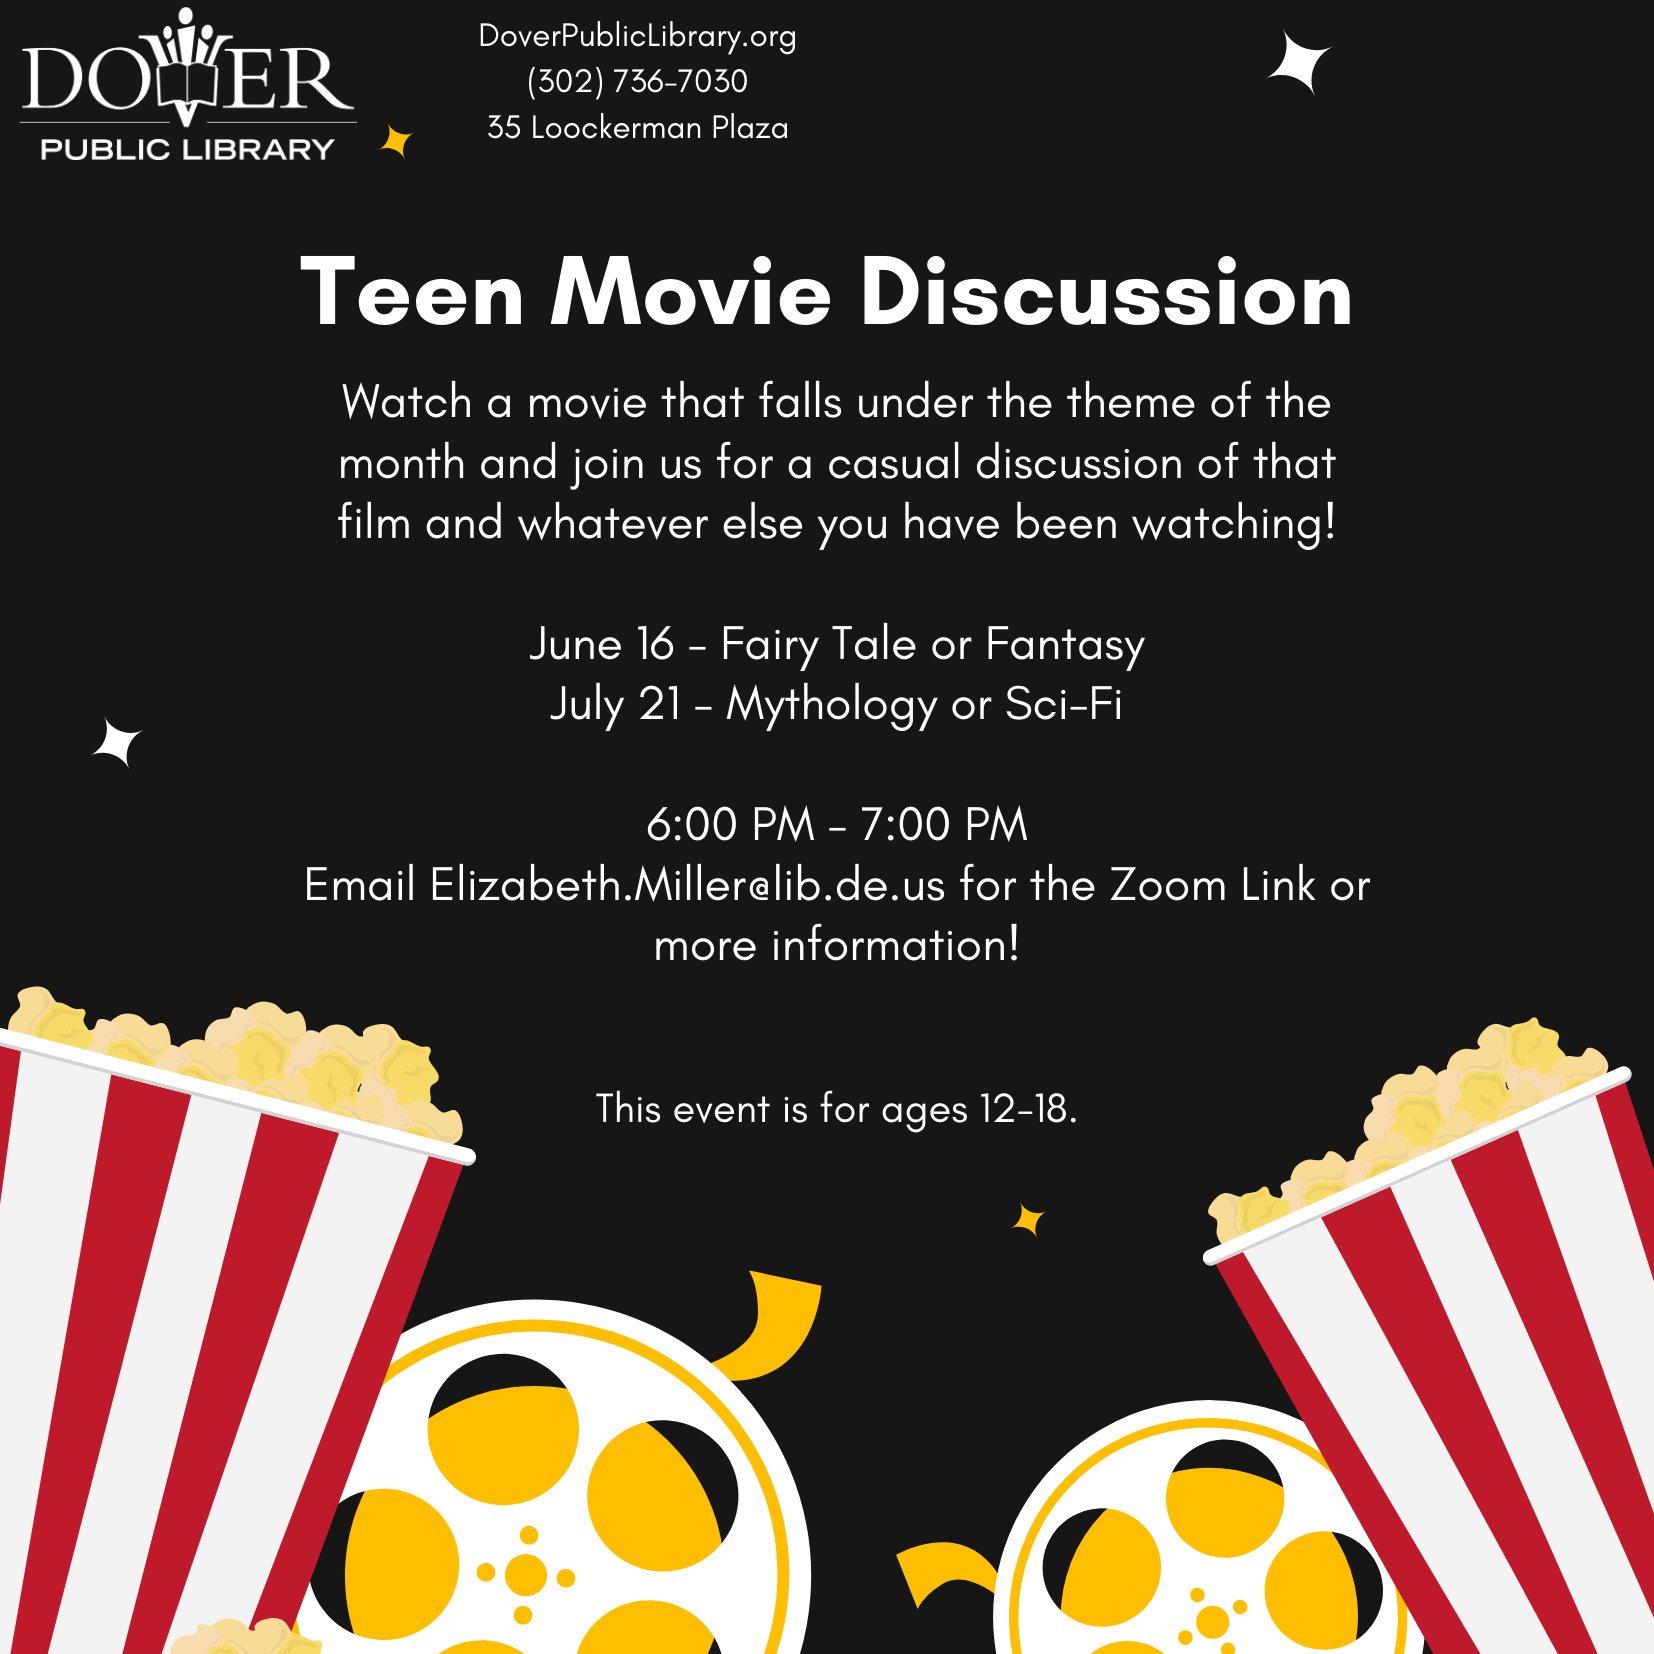 Teen Movie Discussion with the Dover Public Library